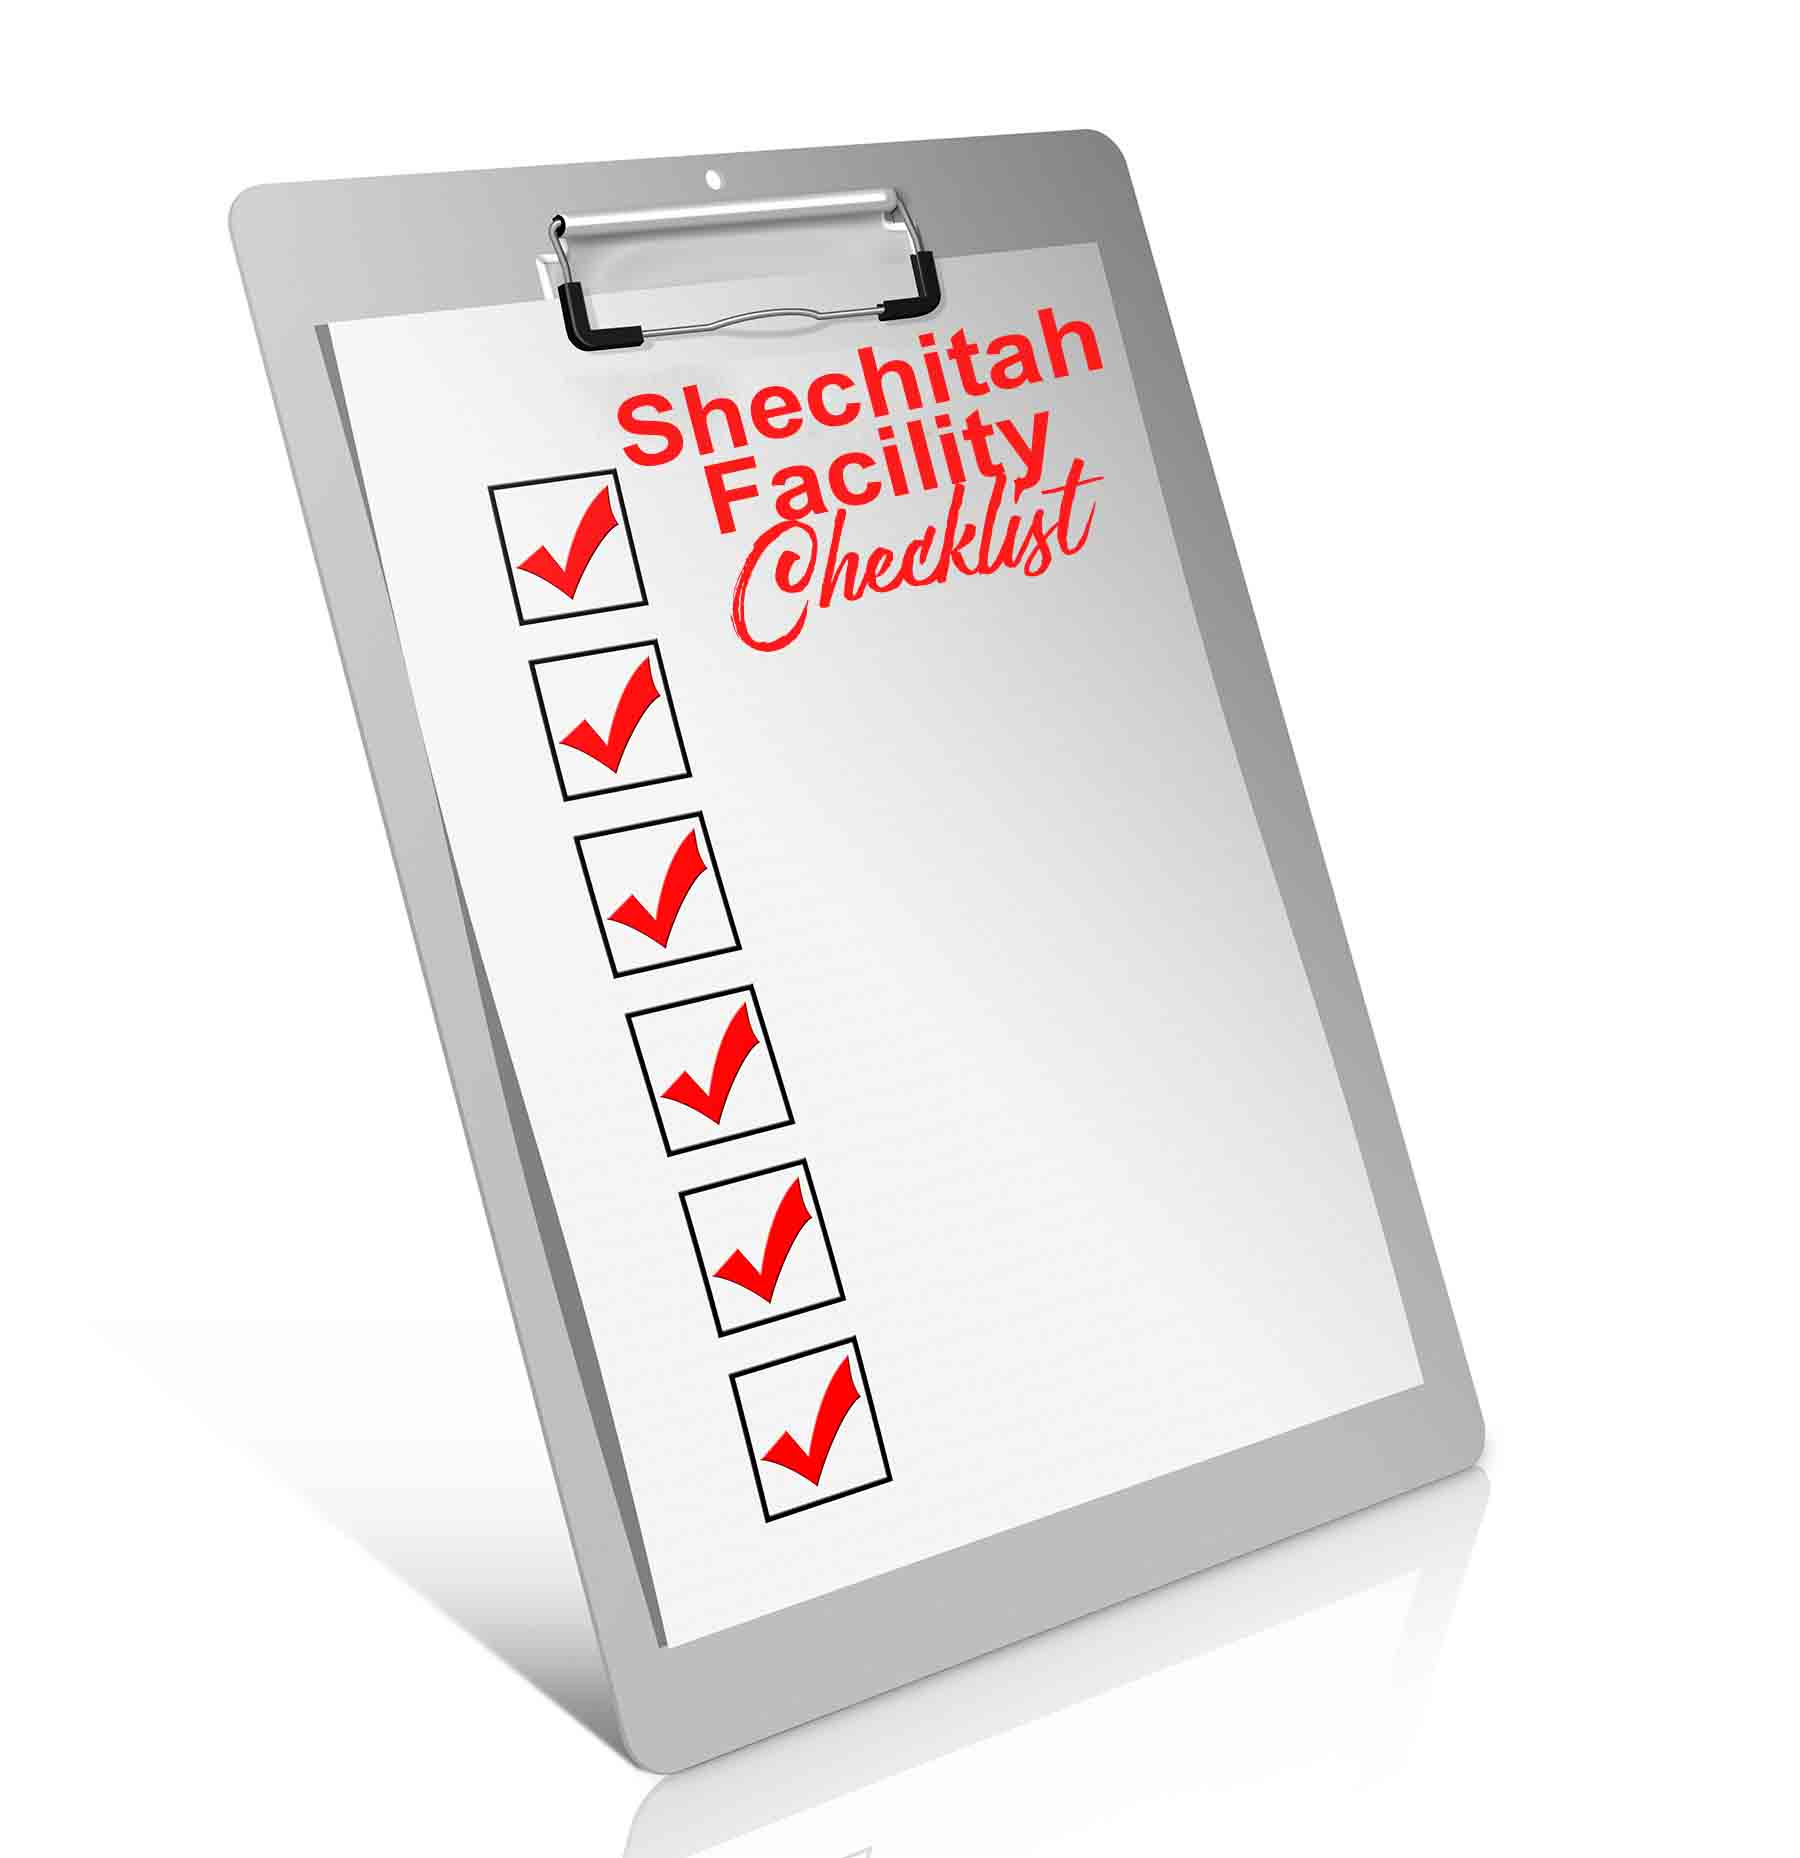 Checklist for Approving a Shechitah Facility